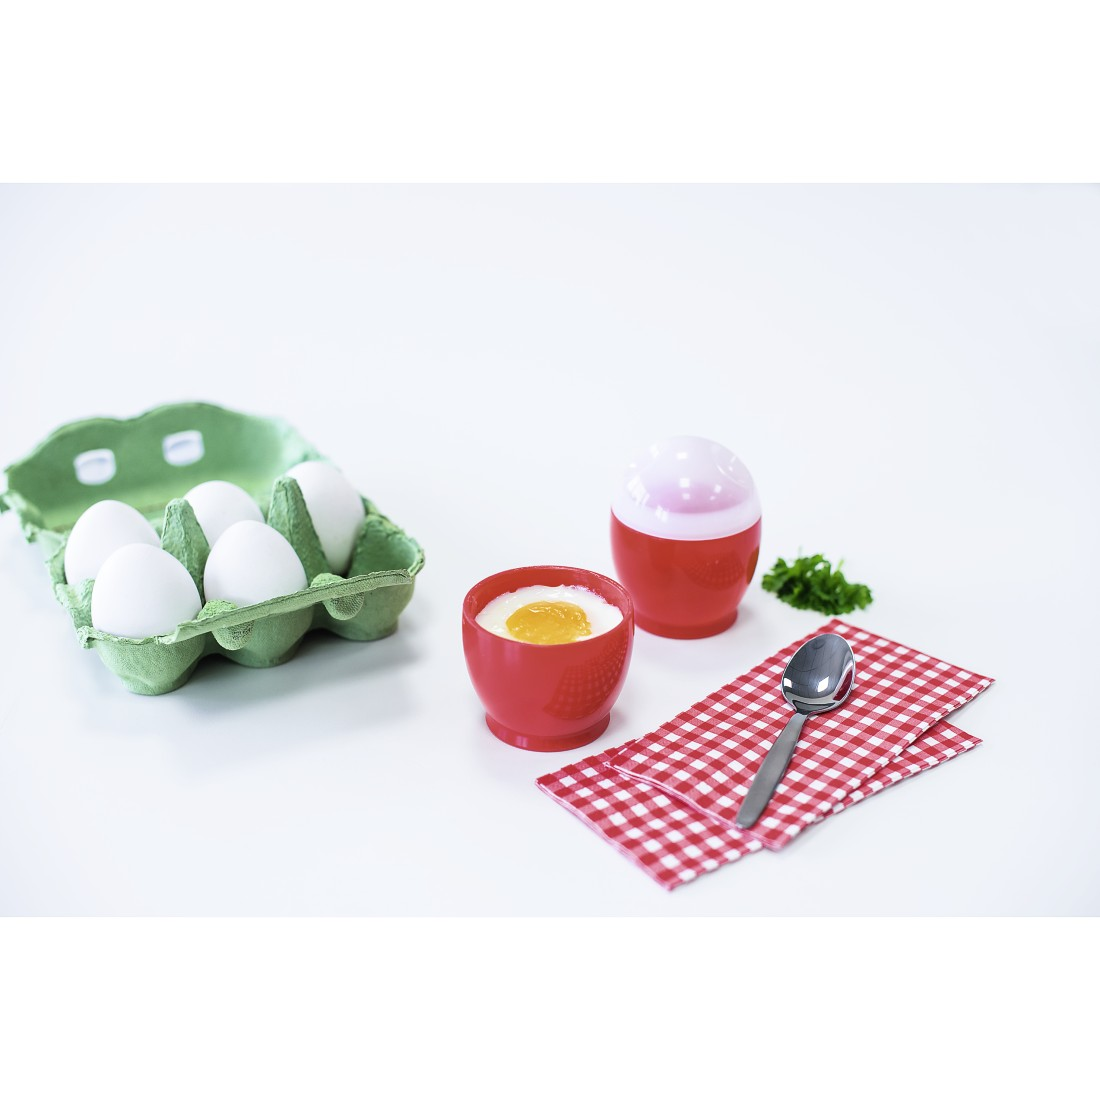 awx High-Res Appliance - Xavax, Set of 2 Microwave Egg Cookers, Polypropylene, 6 x 8 cm